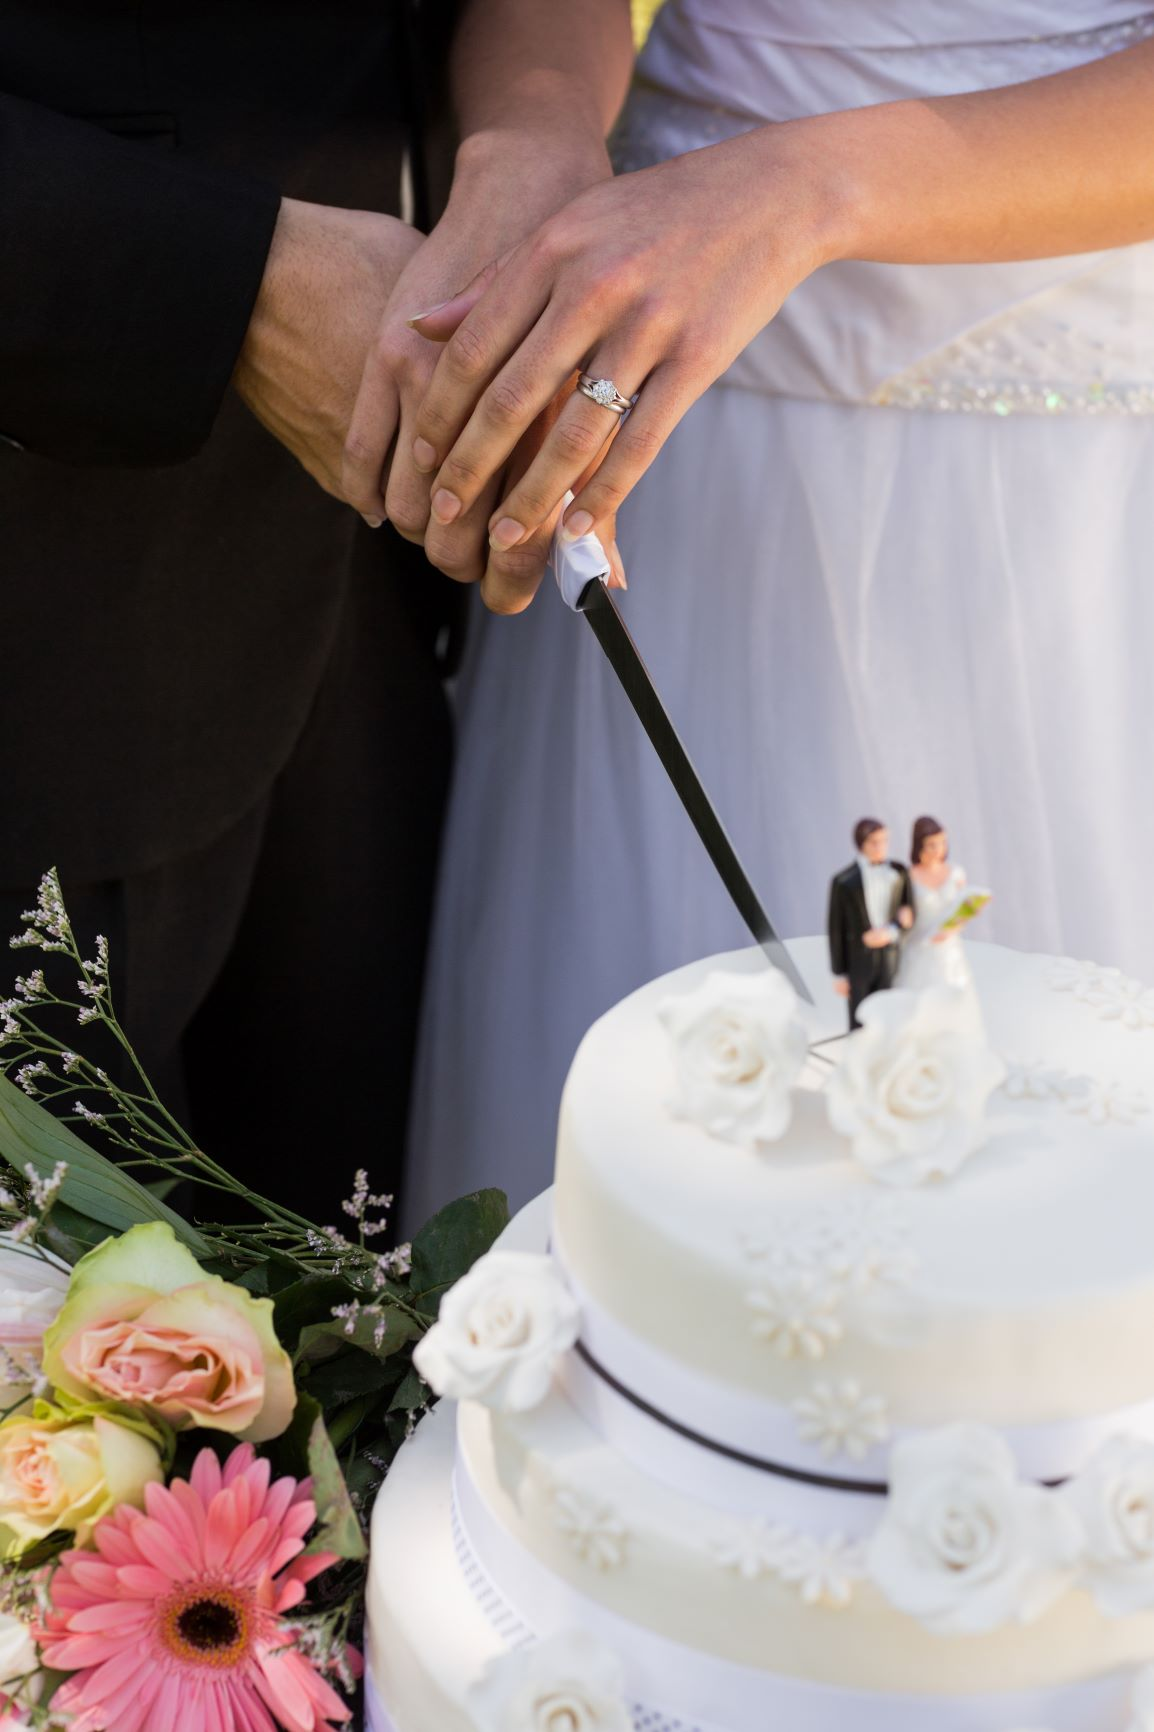 iStock-843752460 couple cutting cake small